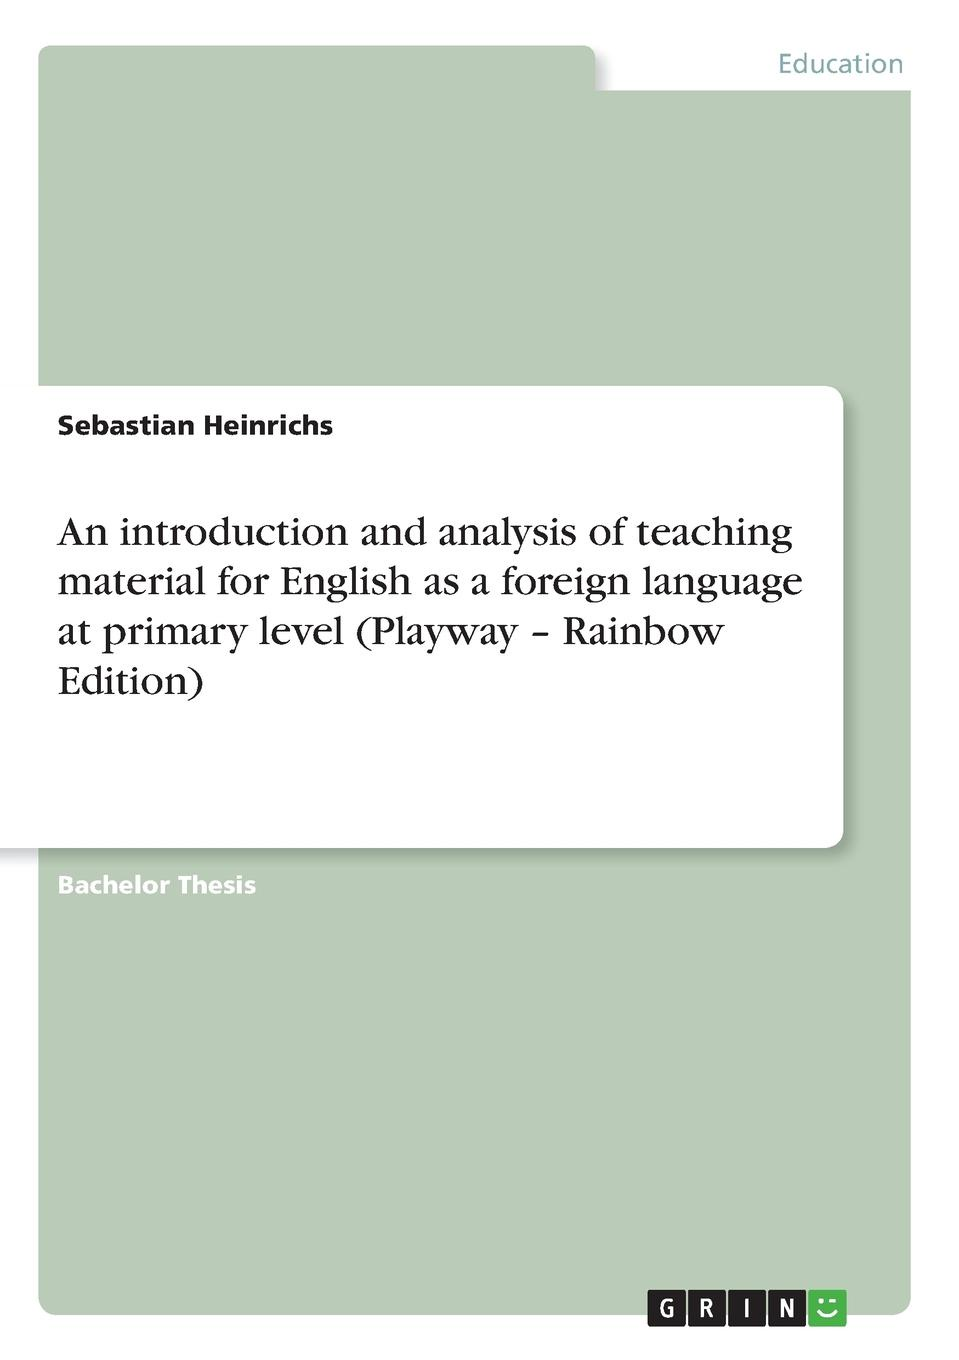 Sebastian Heinrichs An introduction and analysis of teaching material for English as a foreign language at primary level (Playway - Rainbow Edition)